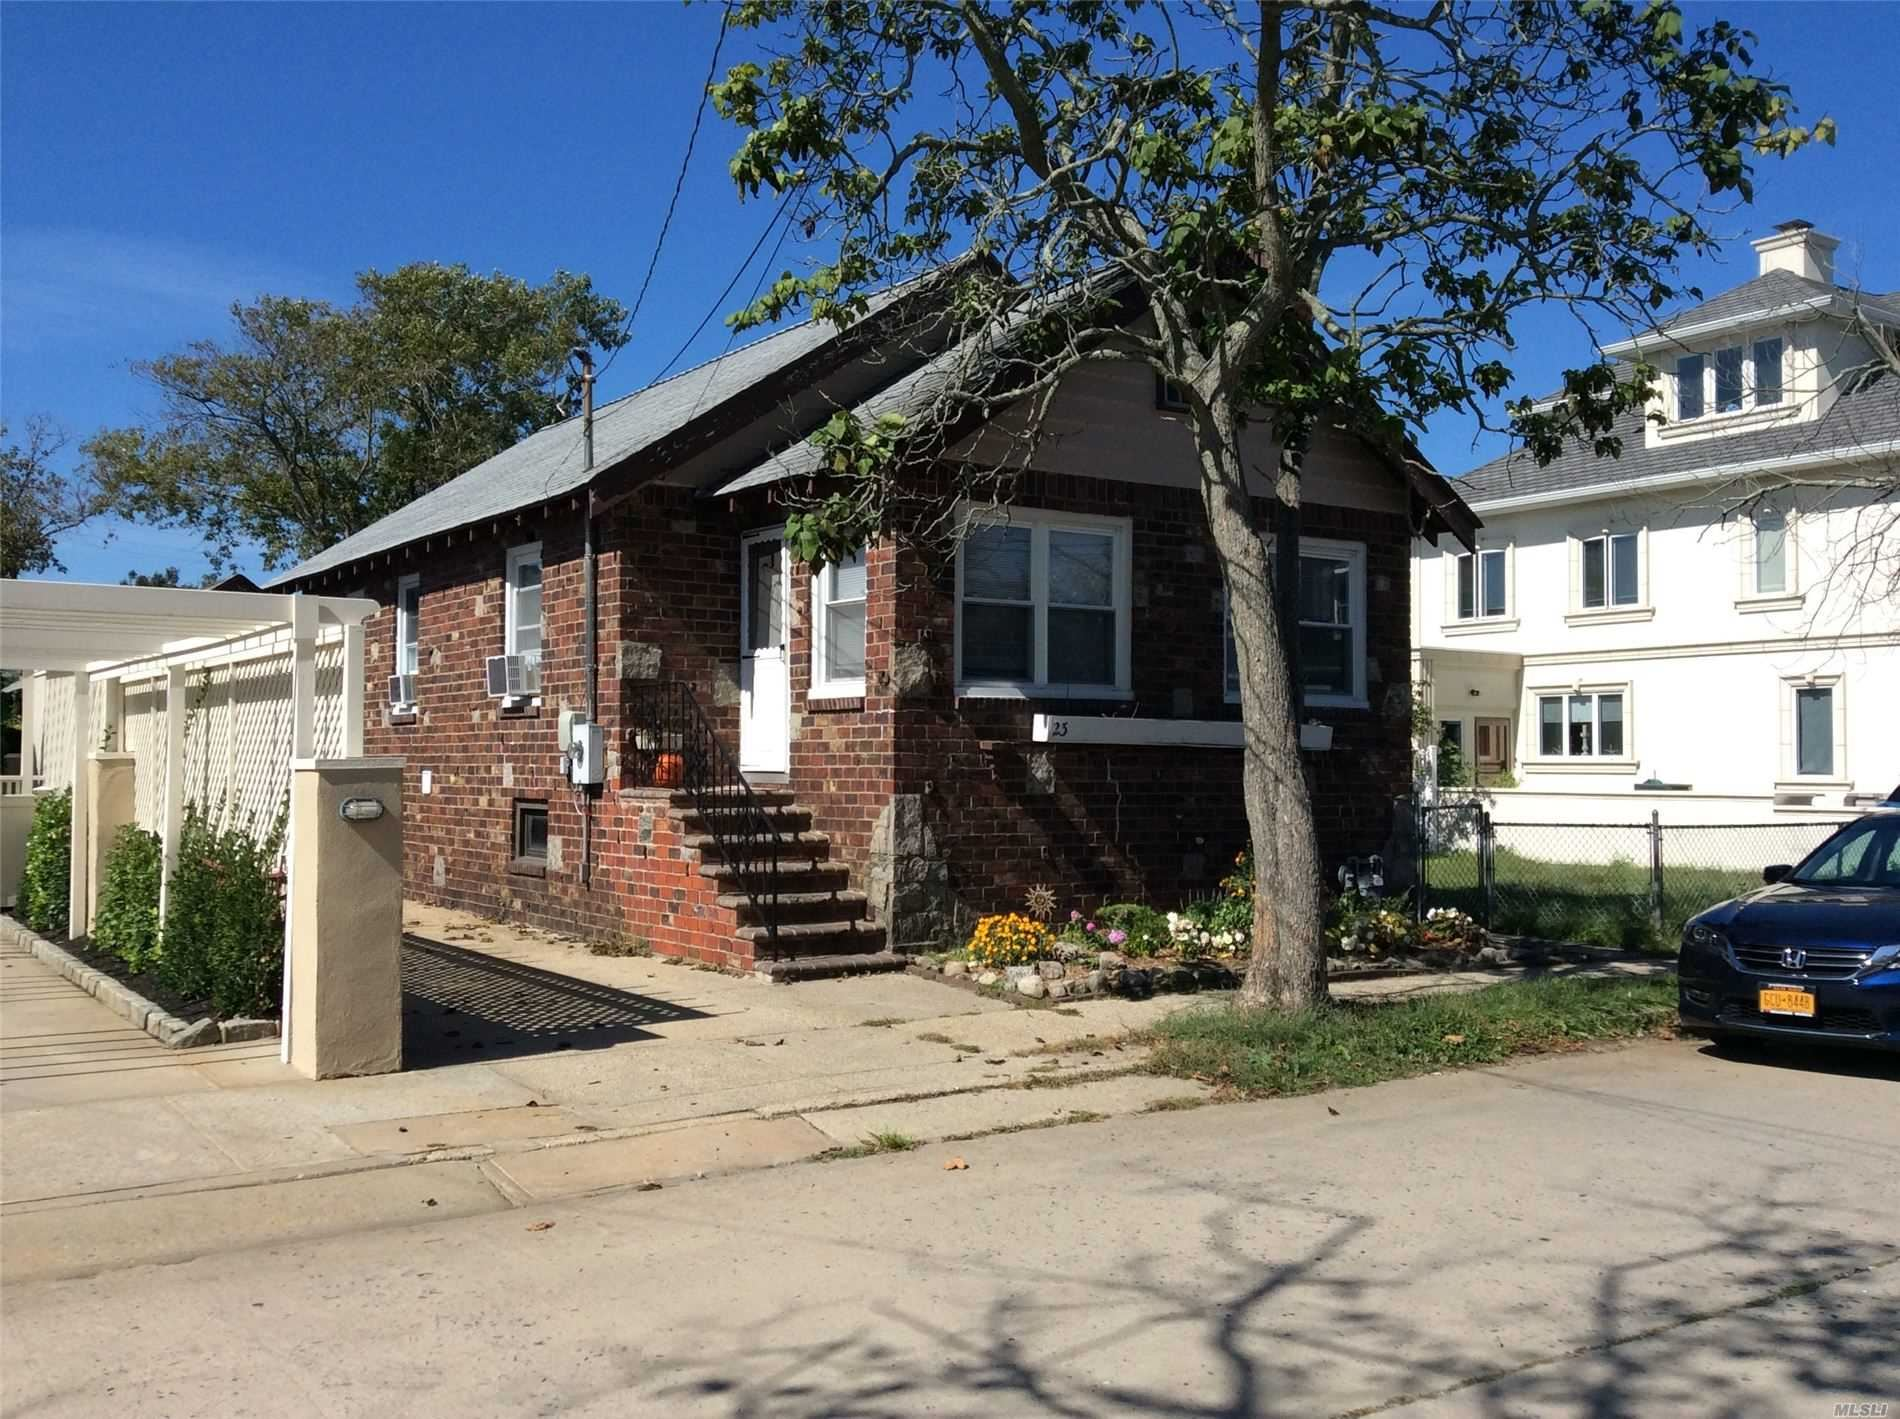 23 N Glenwood Avenue, Point Lookout, NY 11569 - MLS#: 3202377